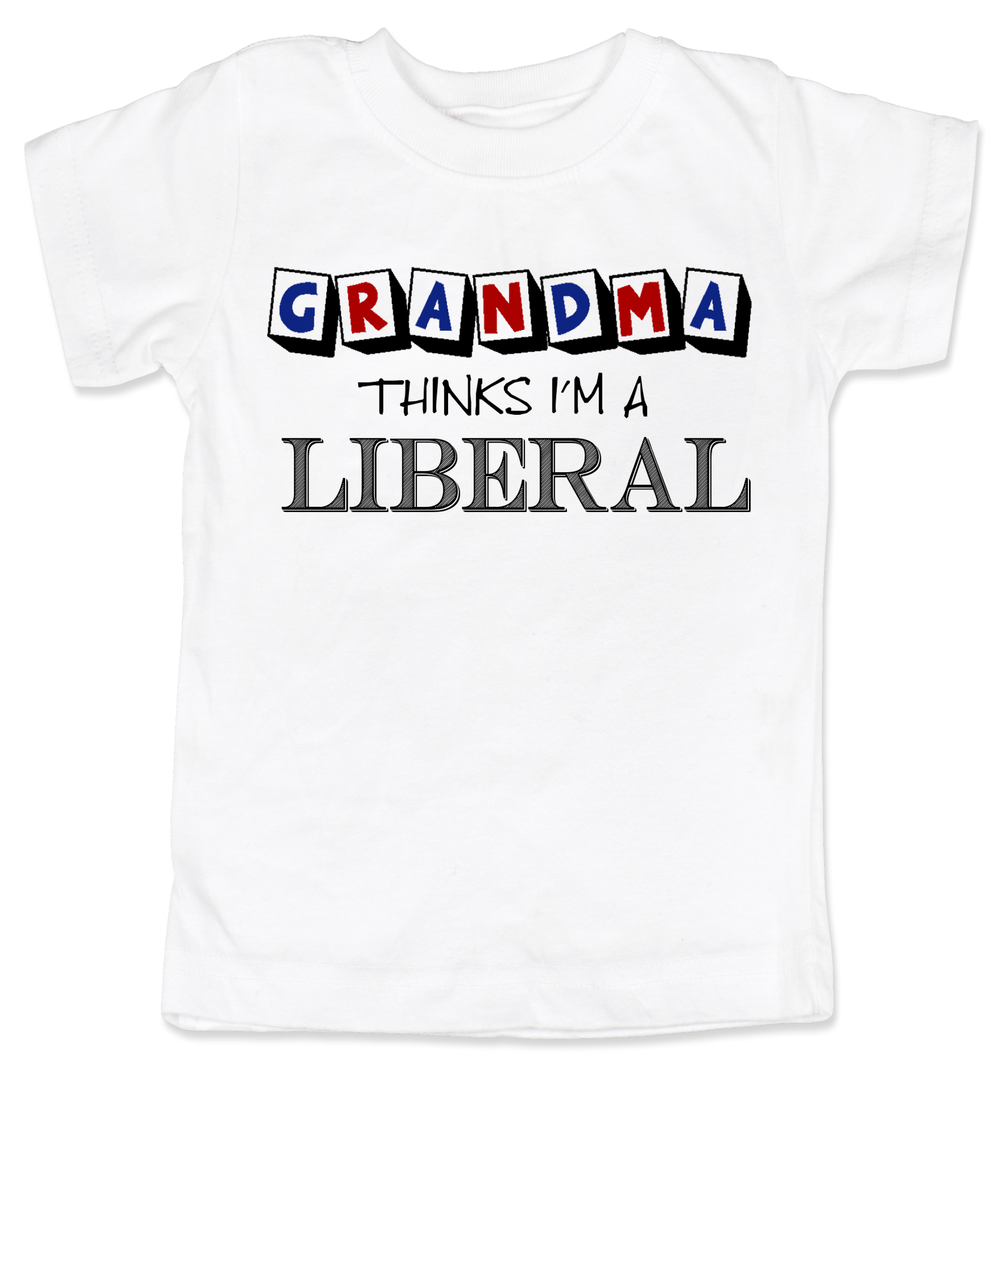 Grandma Thinks Im A Liberal Toddler Shirt Little Kids